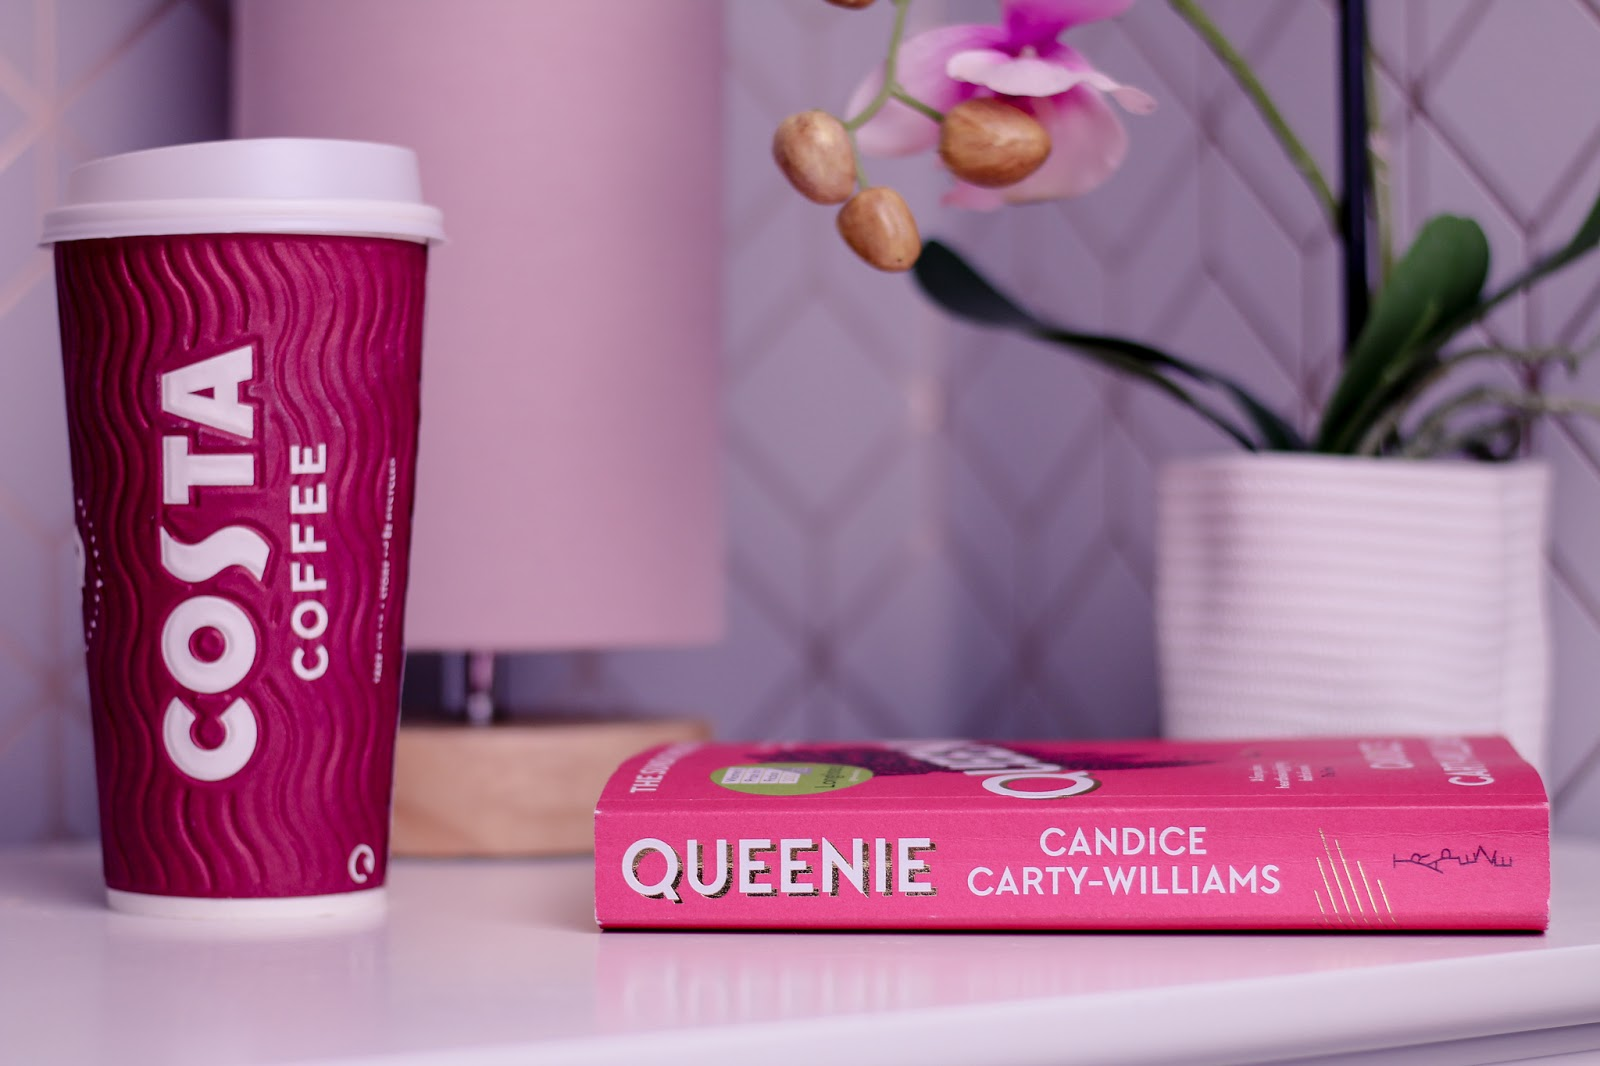 Close up photo of the book Queenie by Candice Carty-Williams on a white bedside table next to a Costa take away cup